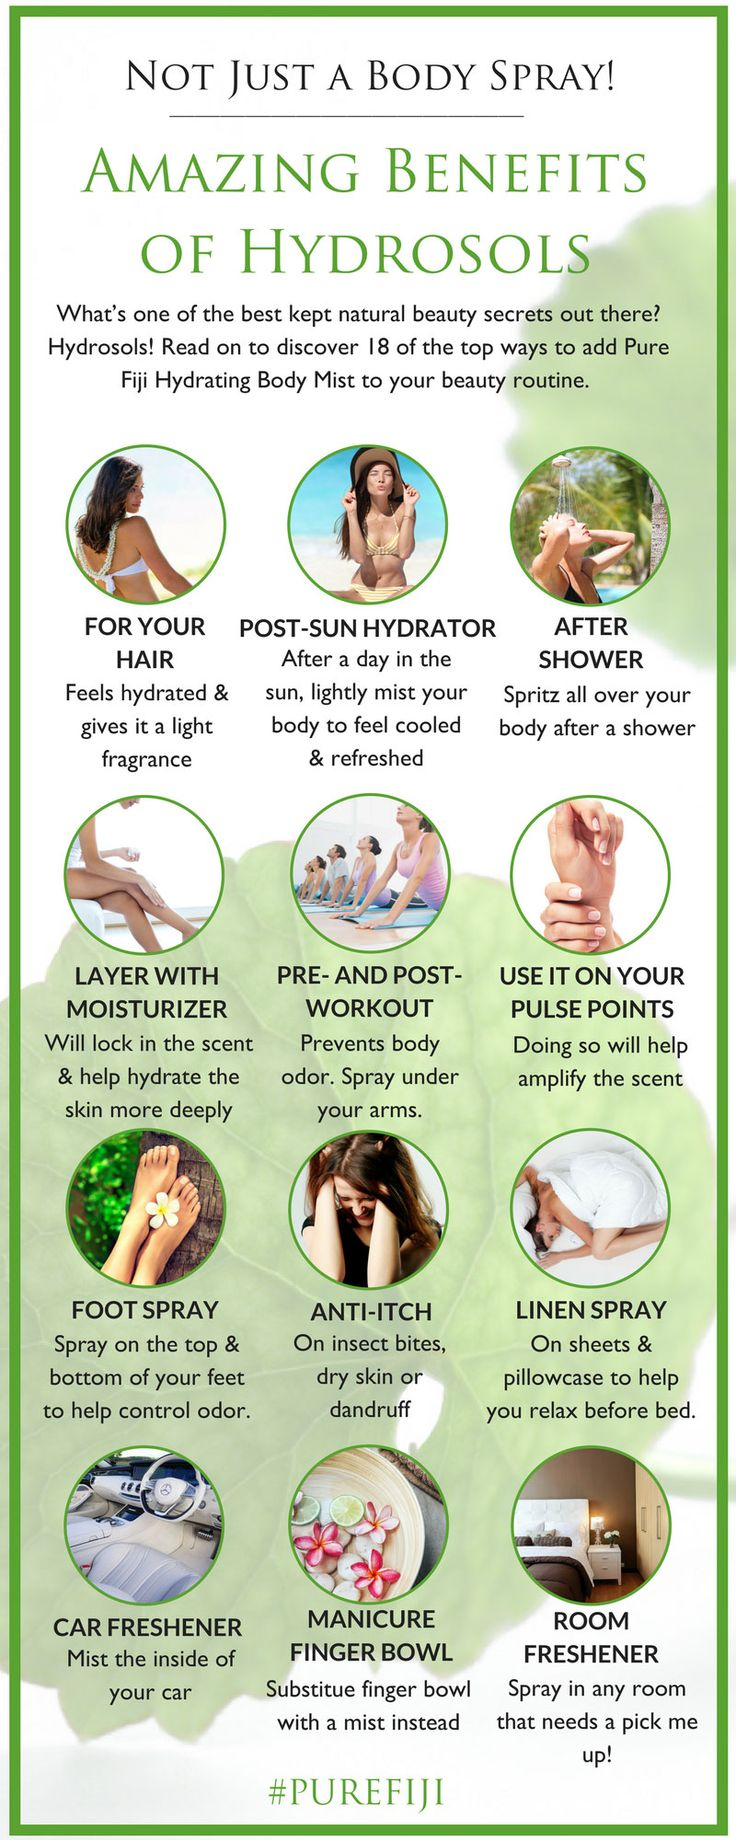 One of the best kept natural beauty secrets out there. Read on to discover 18 of the top ways to add hydrosols to your beauty routine from #PureFiji blog. Infographic - Hydrosols #NaturalBeauty#NaturalSkinCare#BodyCareProducts#OrganicOils